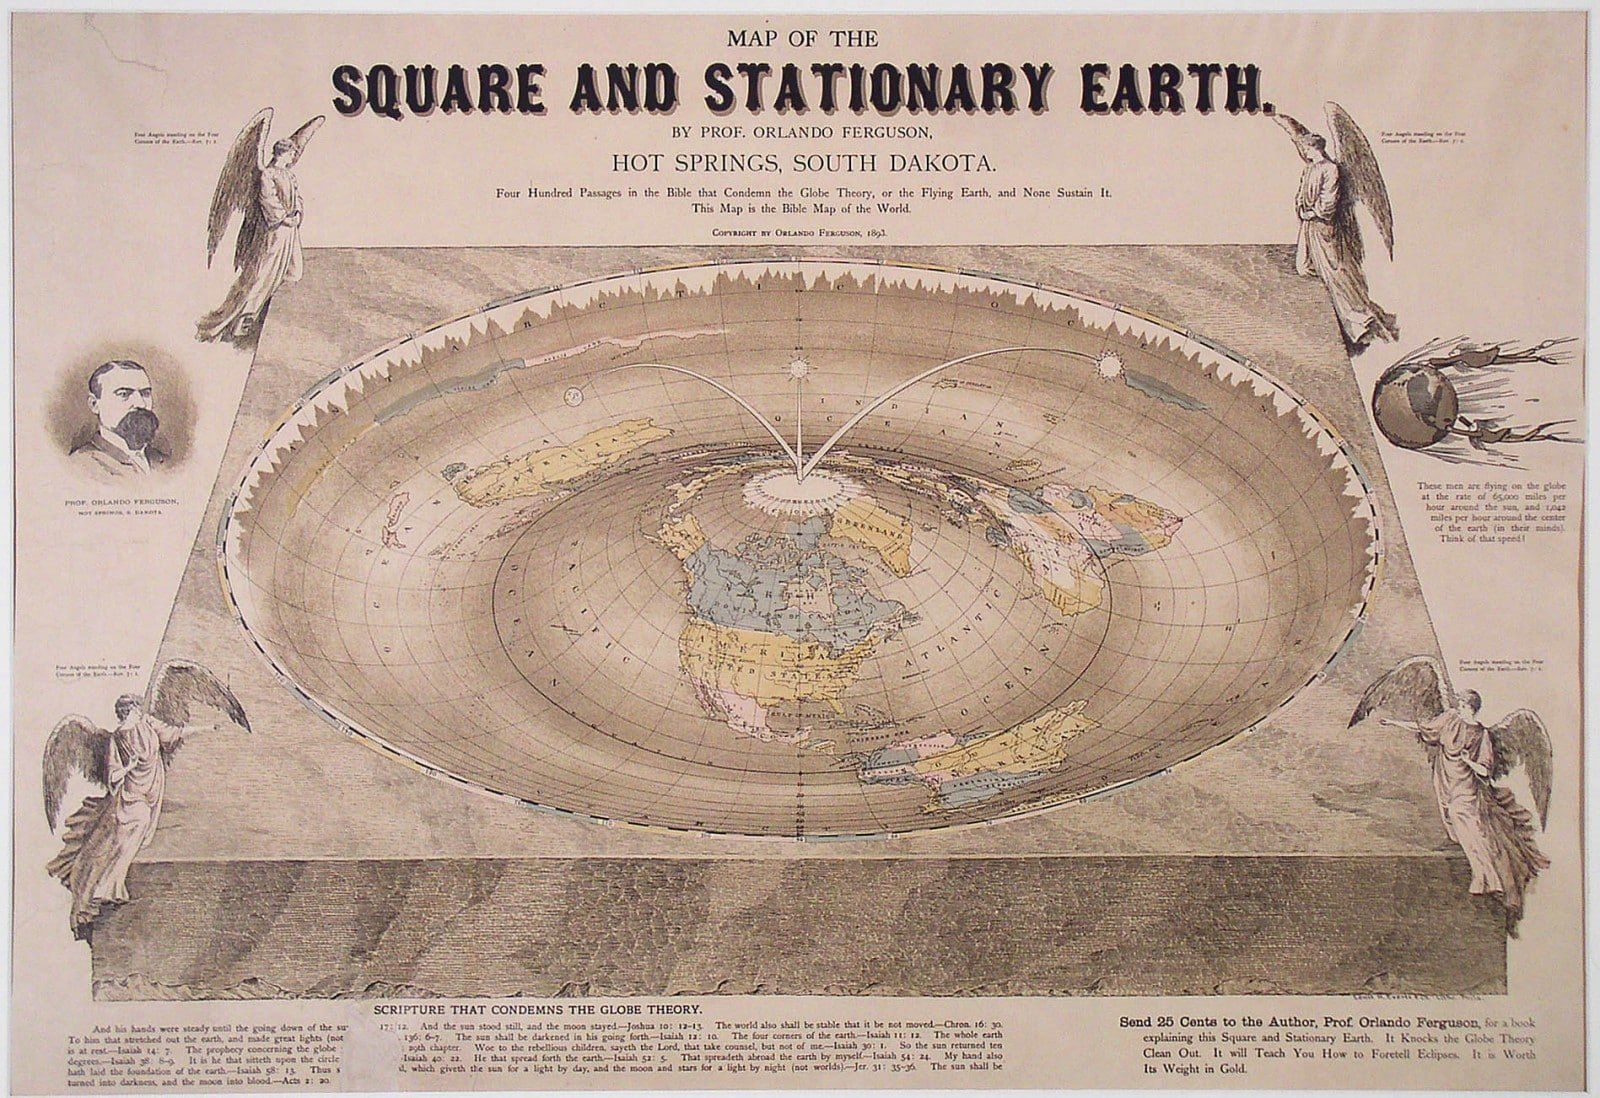 BRM1124-Square-Stationary-Earth-1893-1600x1098.jpg